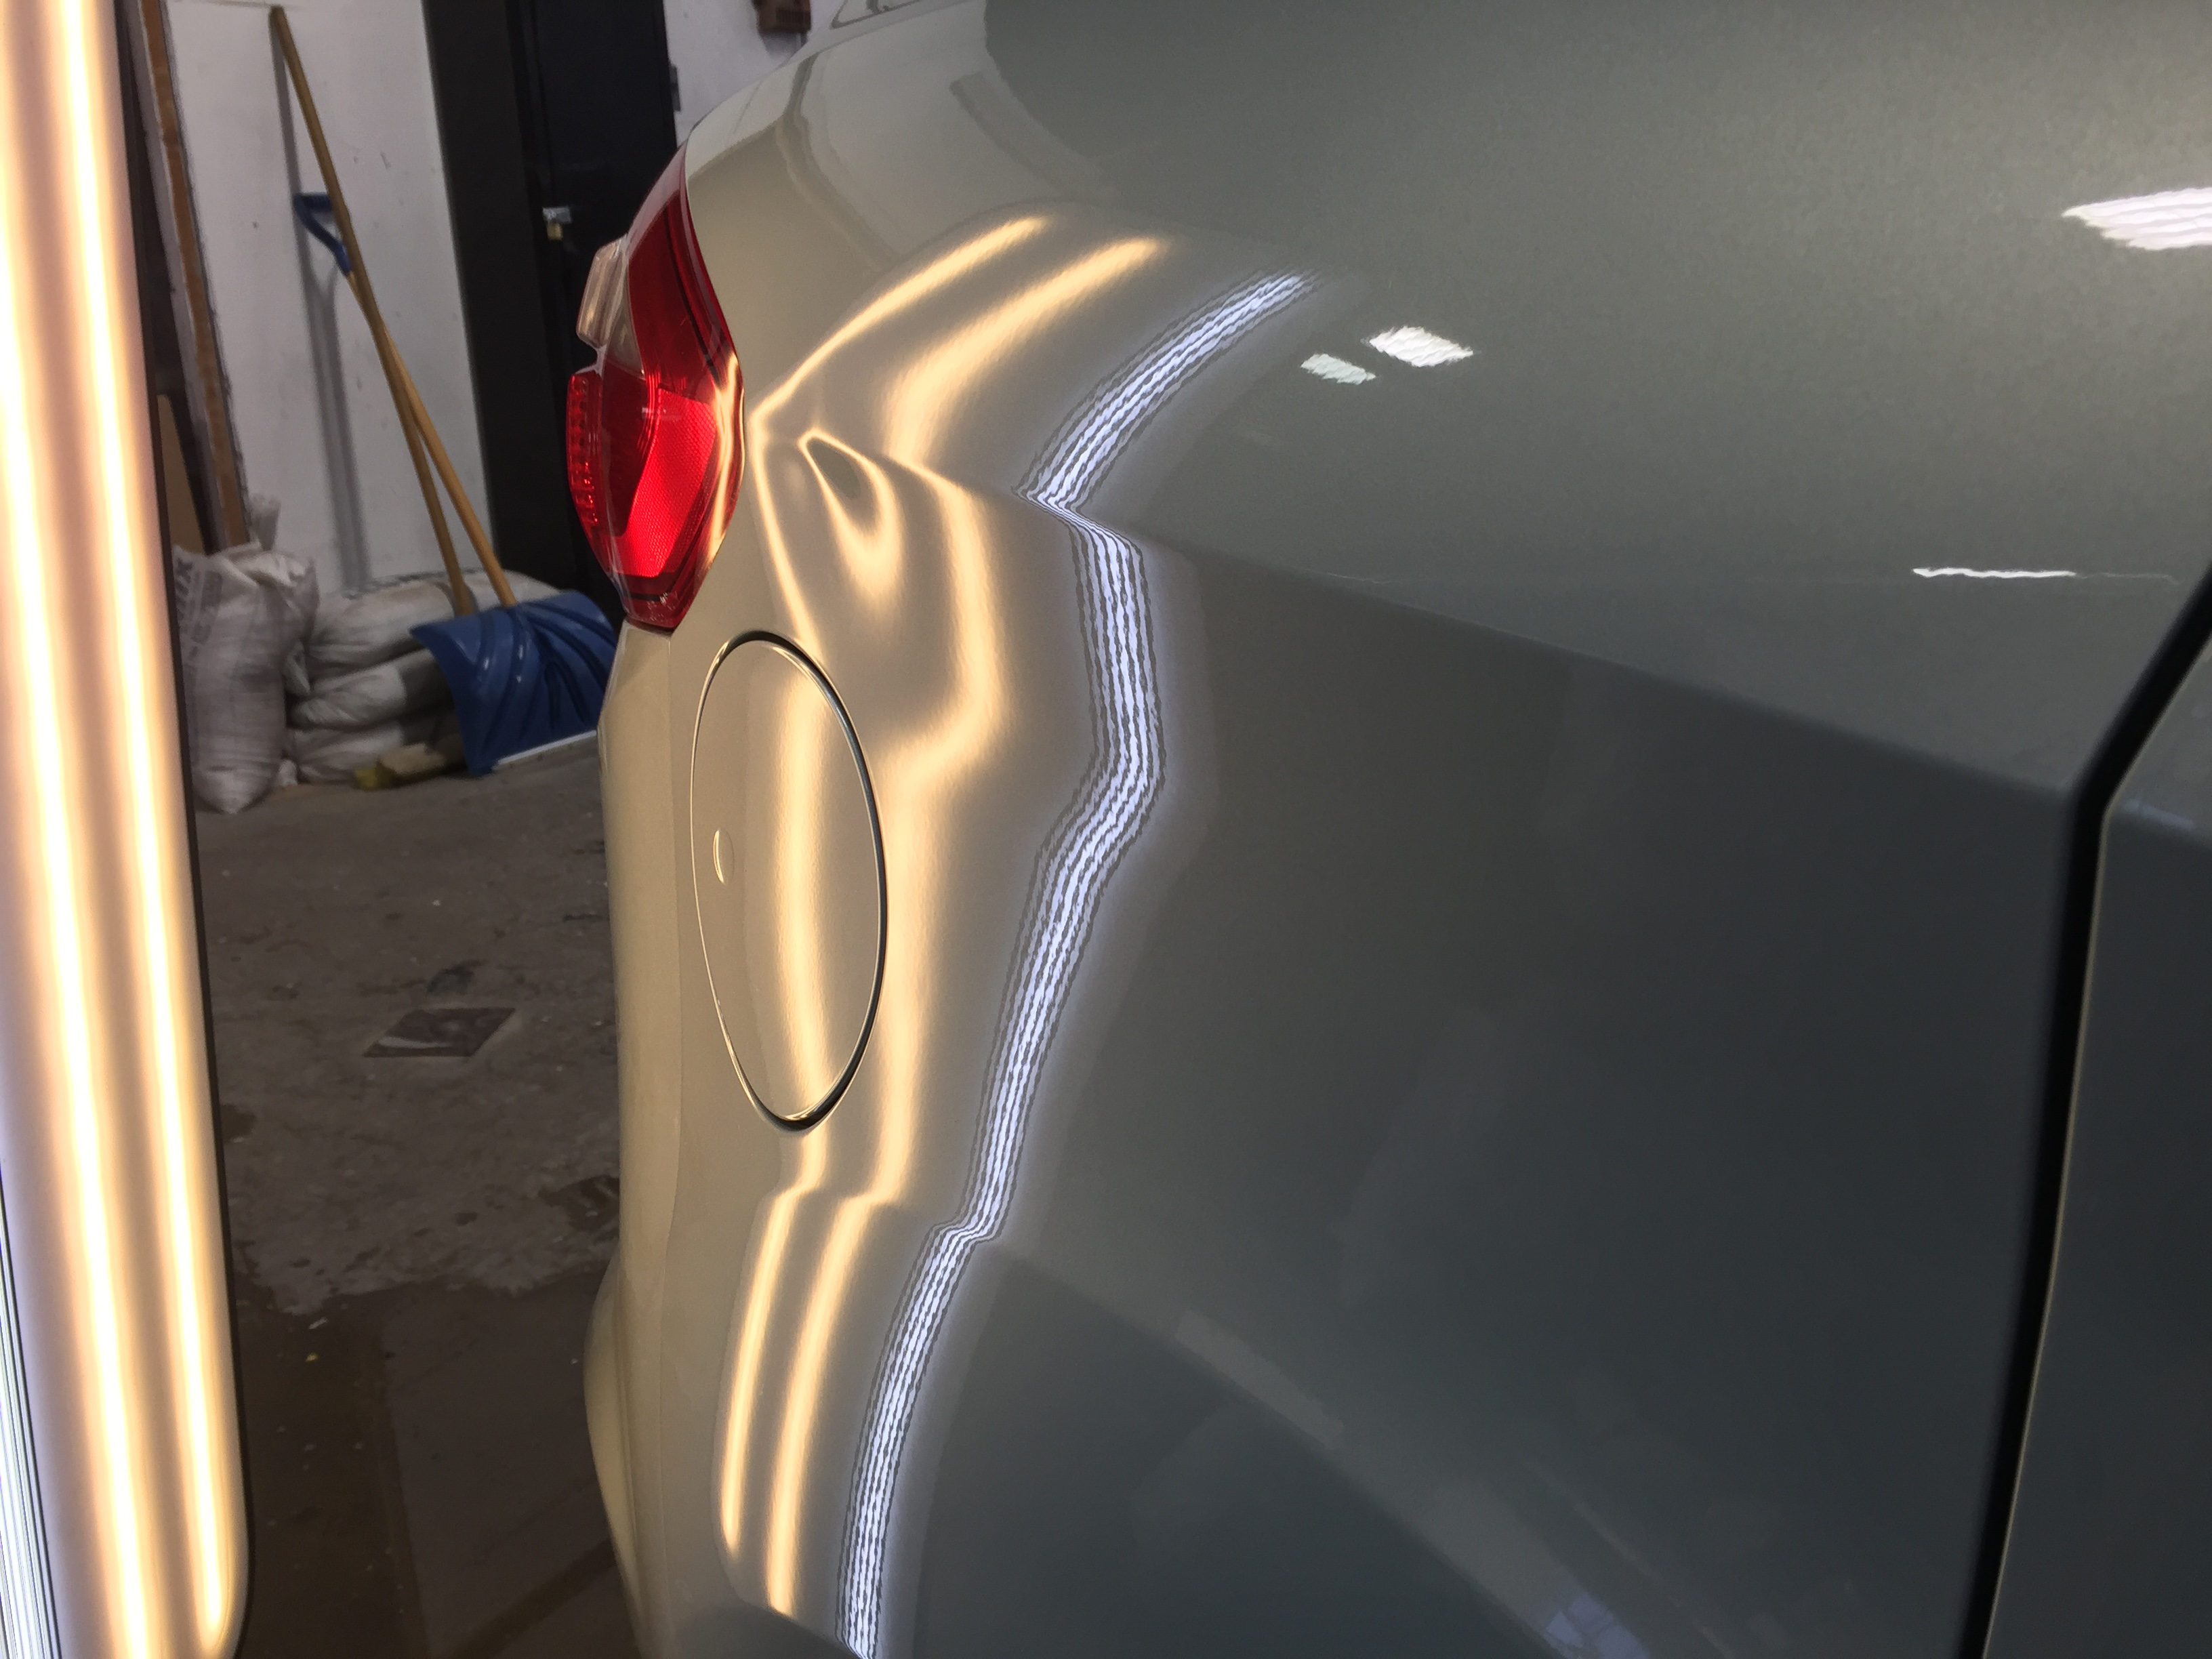 """2013 Ford C-Max Hybrid large dent in passenger rear quarter, access through tail light images of access to damaged area. Work done by """"dent expert"""" Michael Bocek from 217dent.com. For more information go to 217dent.com or 217hail.com"""